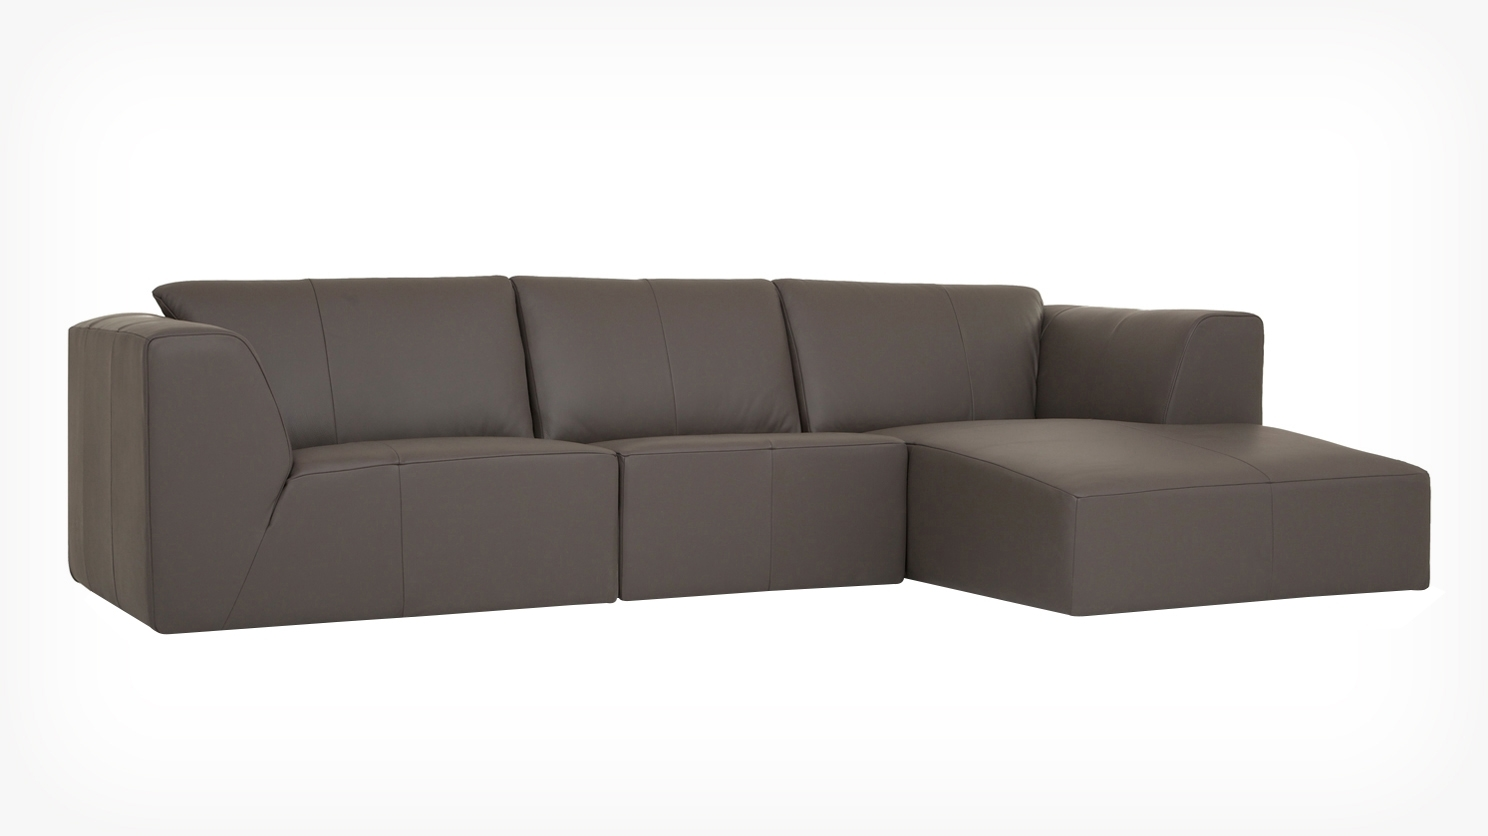 Eq3 | Morten 3 Piece Sectional Sofa With Chaise U2013 Leather Inside Eq3  Sectional Sofas (